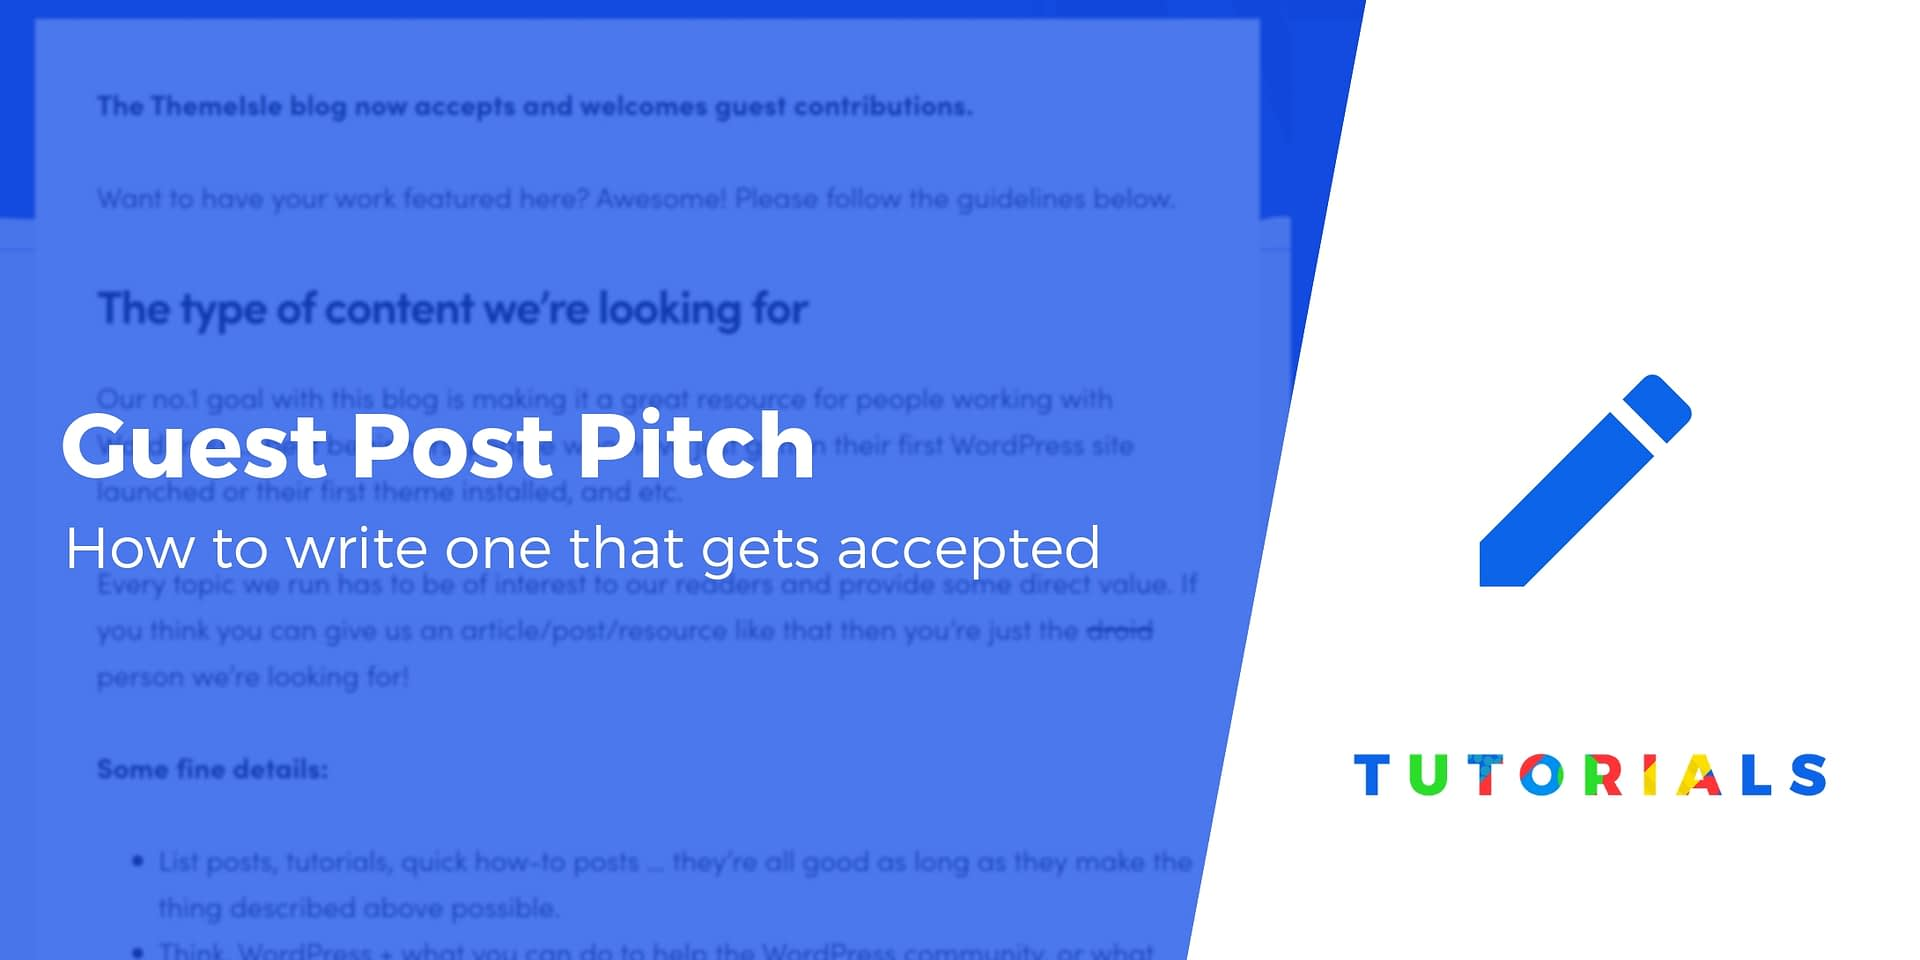 How to Write a Guest Post Pitch (Based on Real Experience)